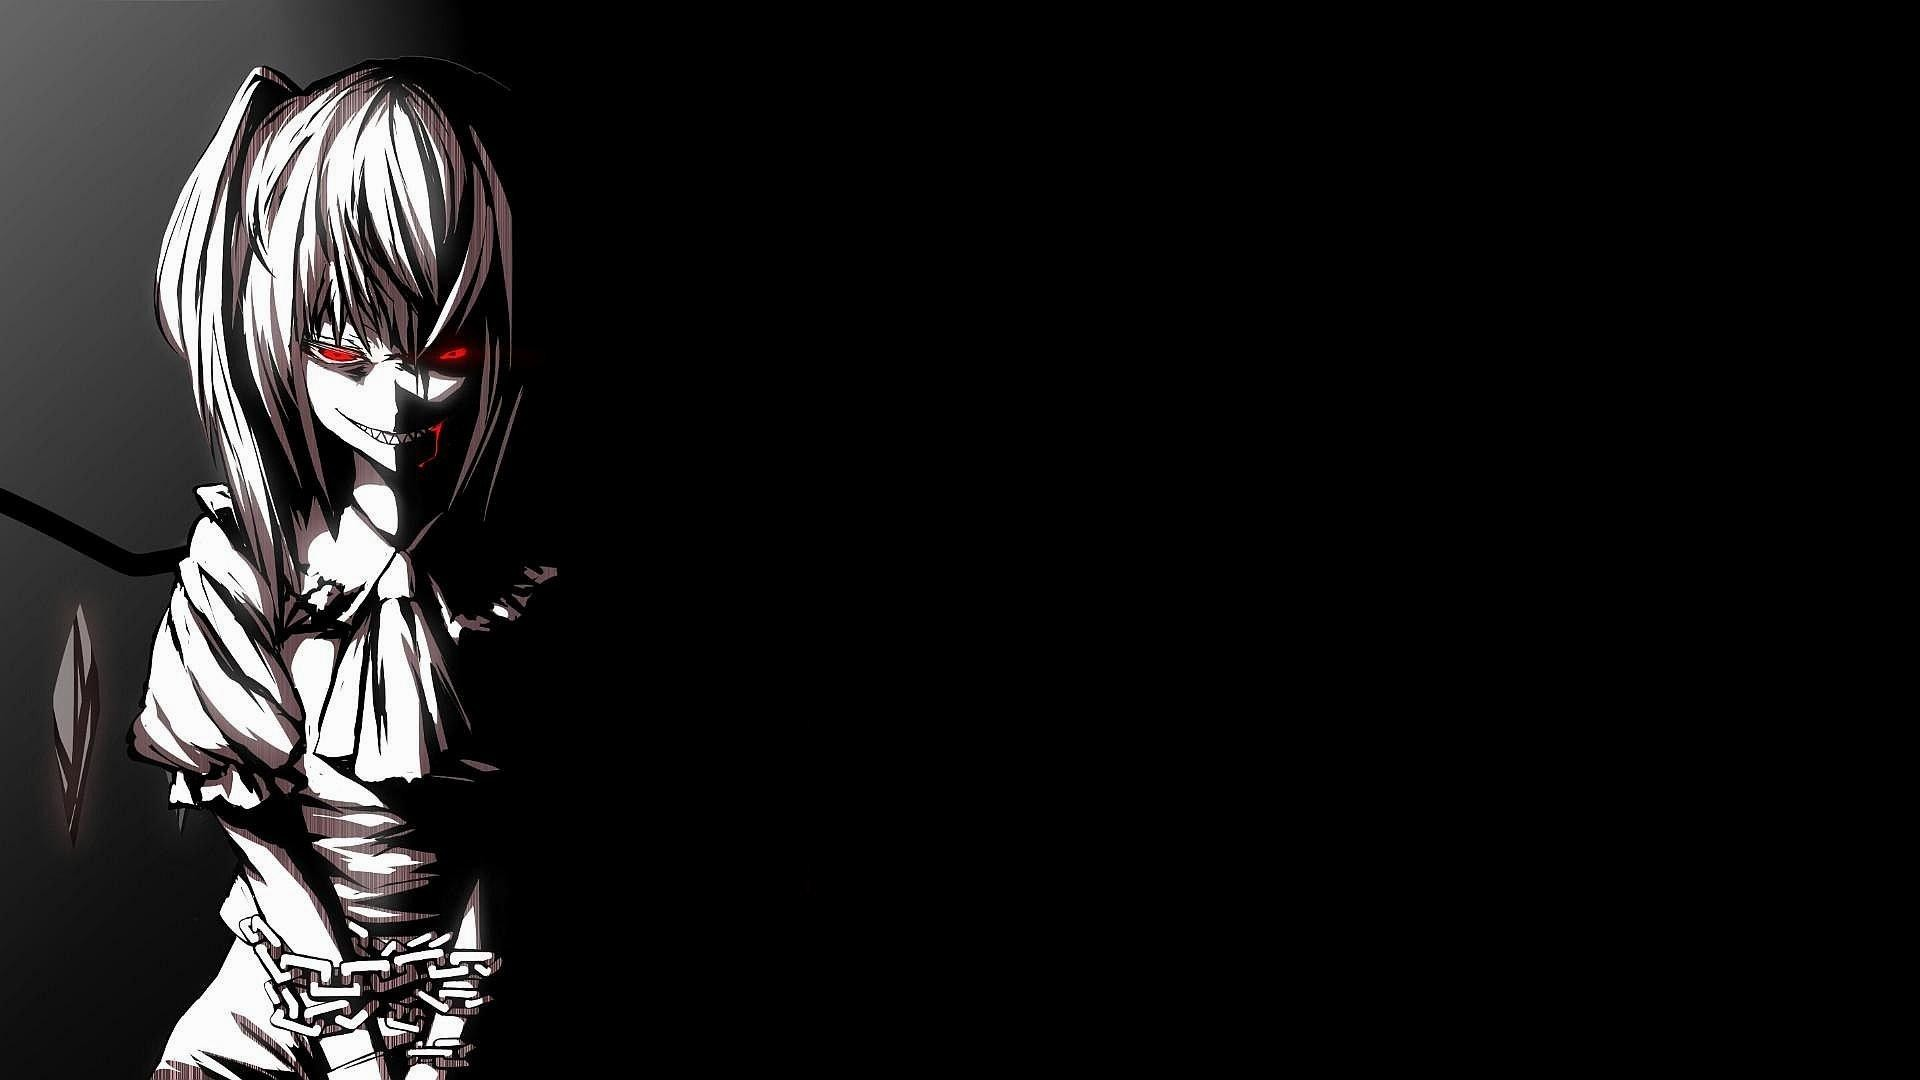 Res: 1920x1080, HD-Anime-wallpaper-wp6406138